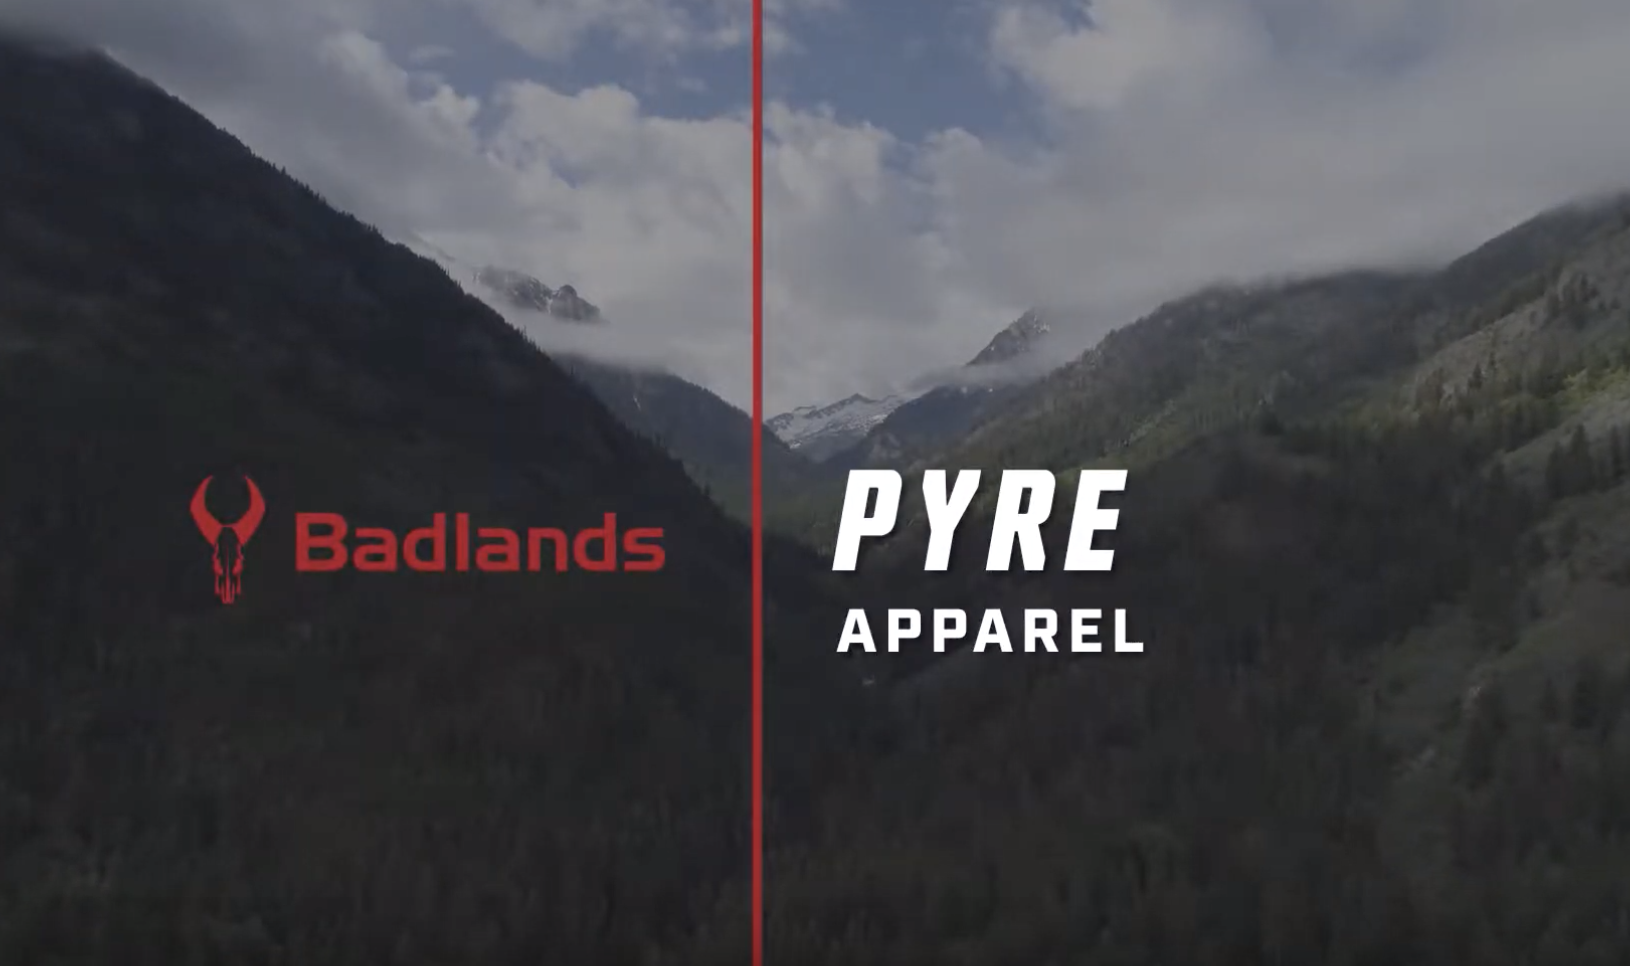 LEARN MORE ABOUT THE PYRE APPAREL